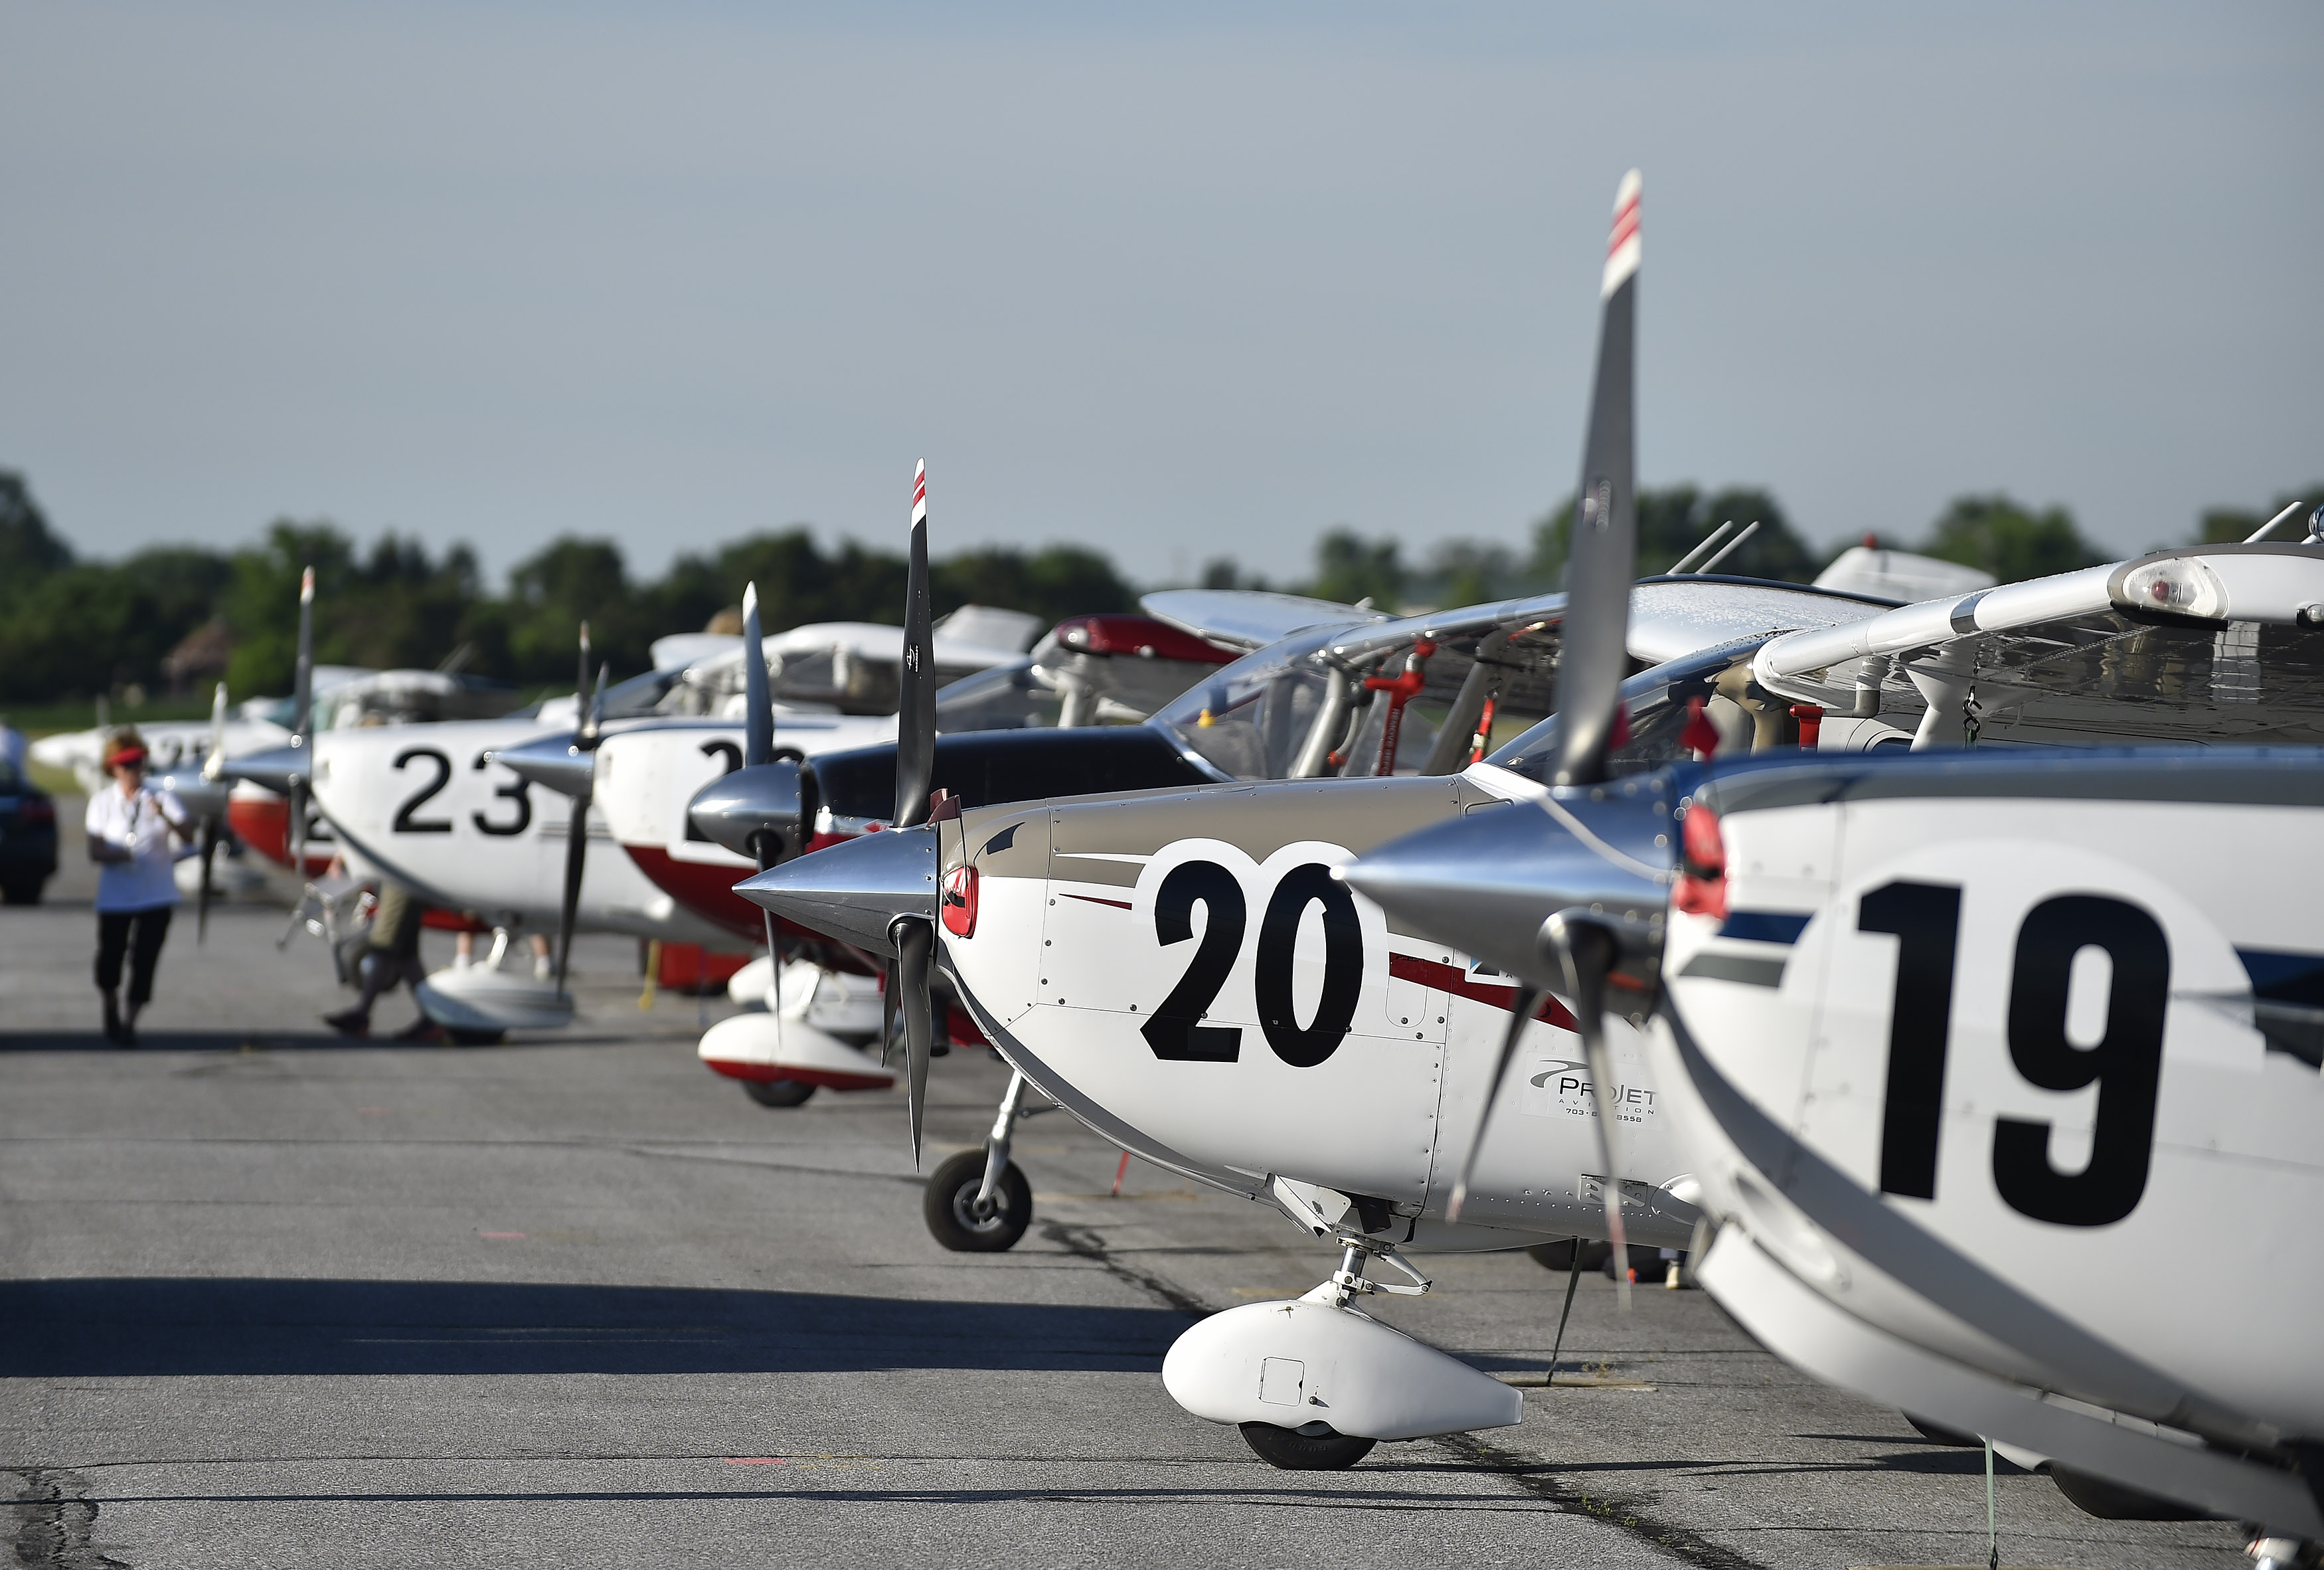 Air Race Classic aircraft are lined up and ready to start the 2017 race from Frederick, Maryland. In 2018, the teams will start in Texas and wind their way through the United States to end in Maine. Photo by David Tulis.